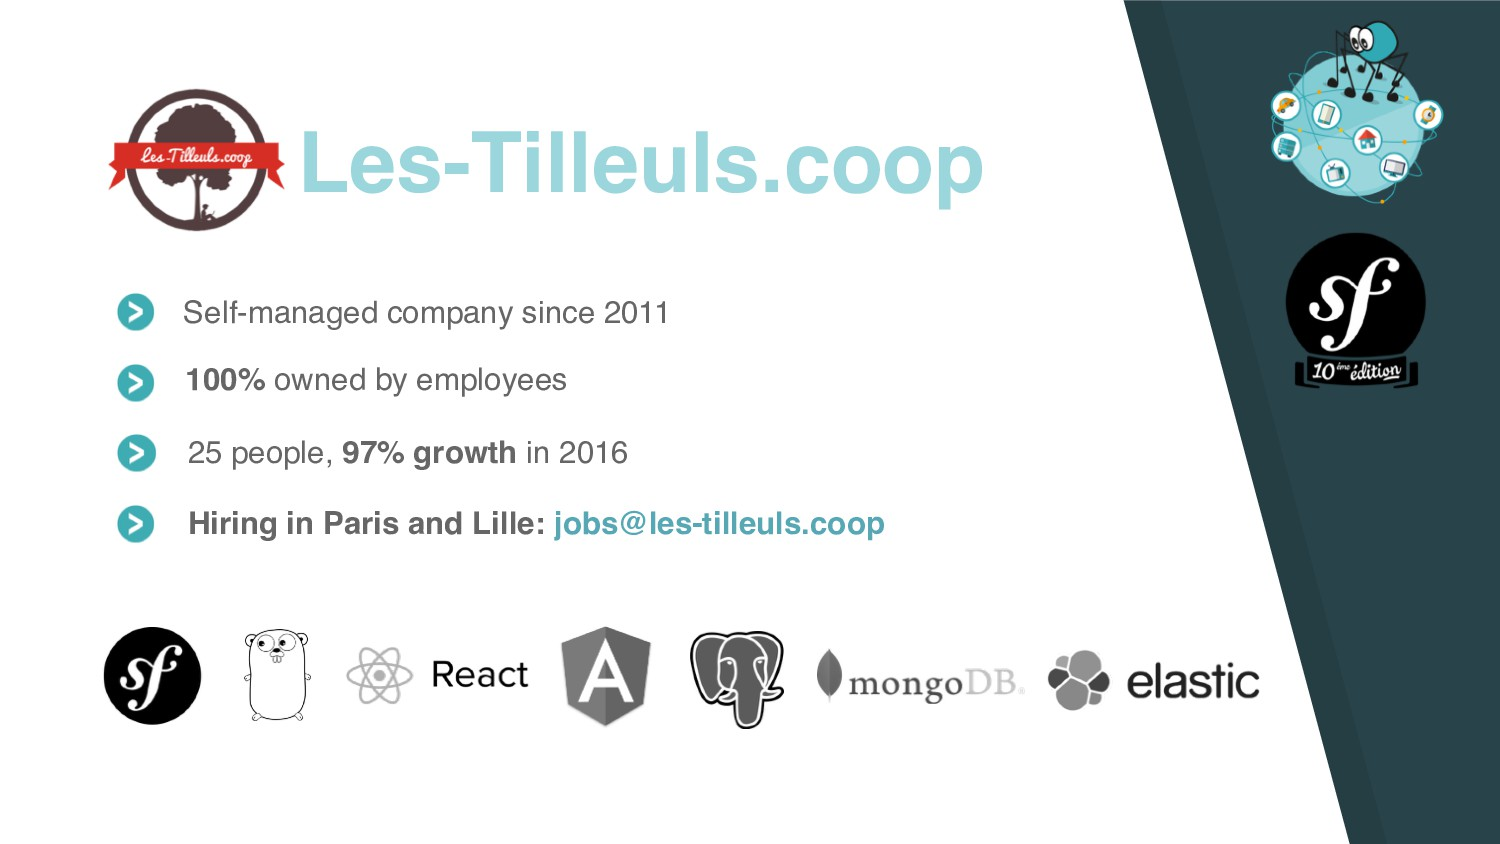 Les-Tilleuls.coop Self-managed company since 20...